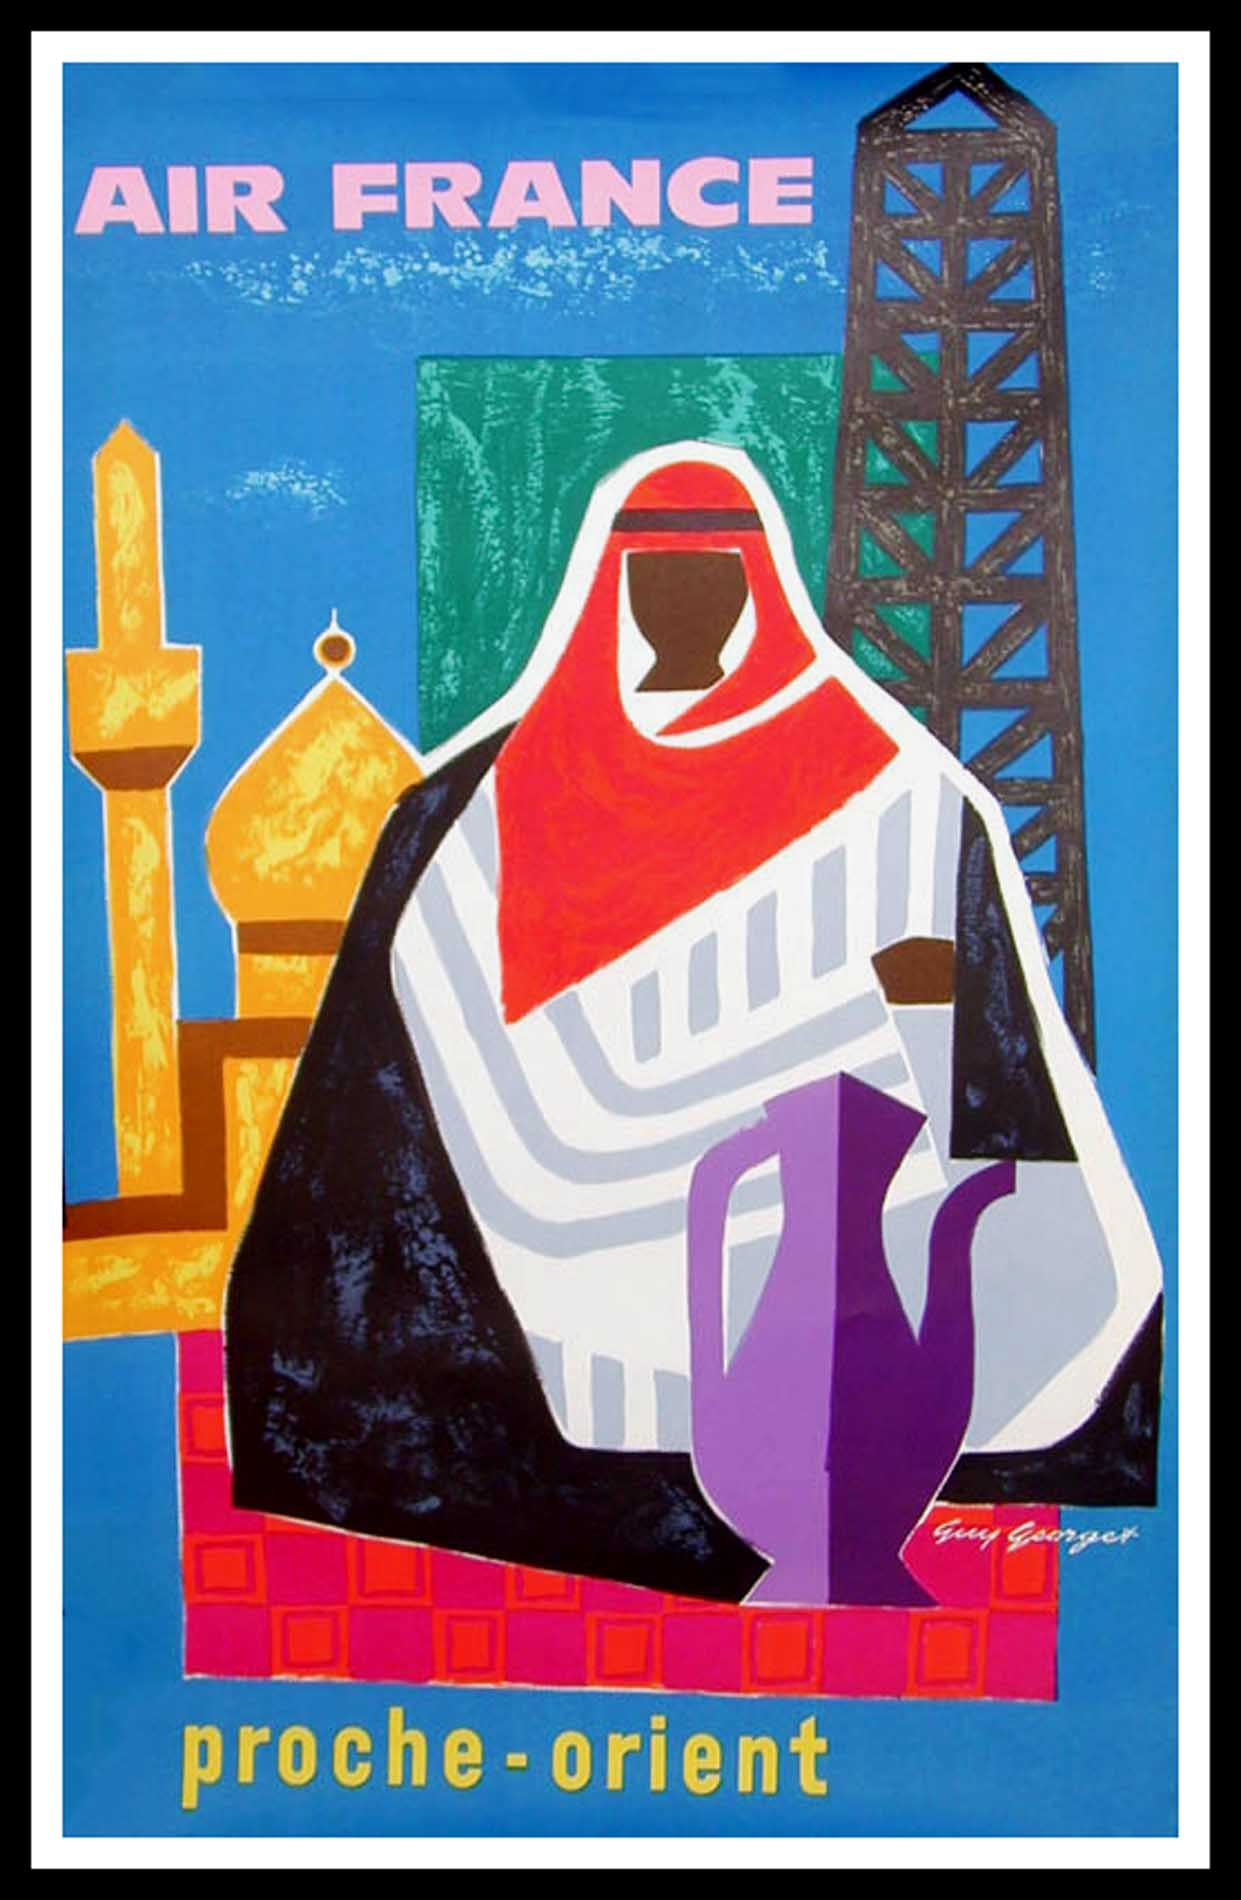 """(alt=""""original vintage travel poster Air France Middle East, signed by Guy Georget 1963 printed by Courbet"""")"""